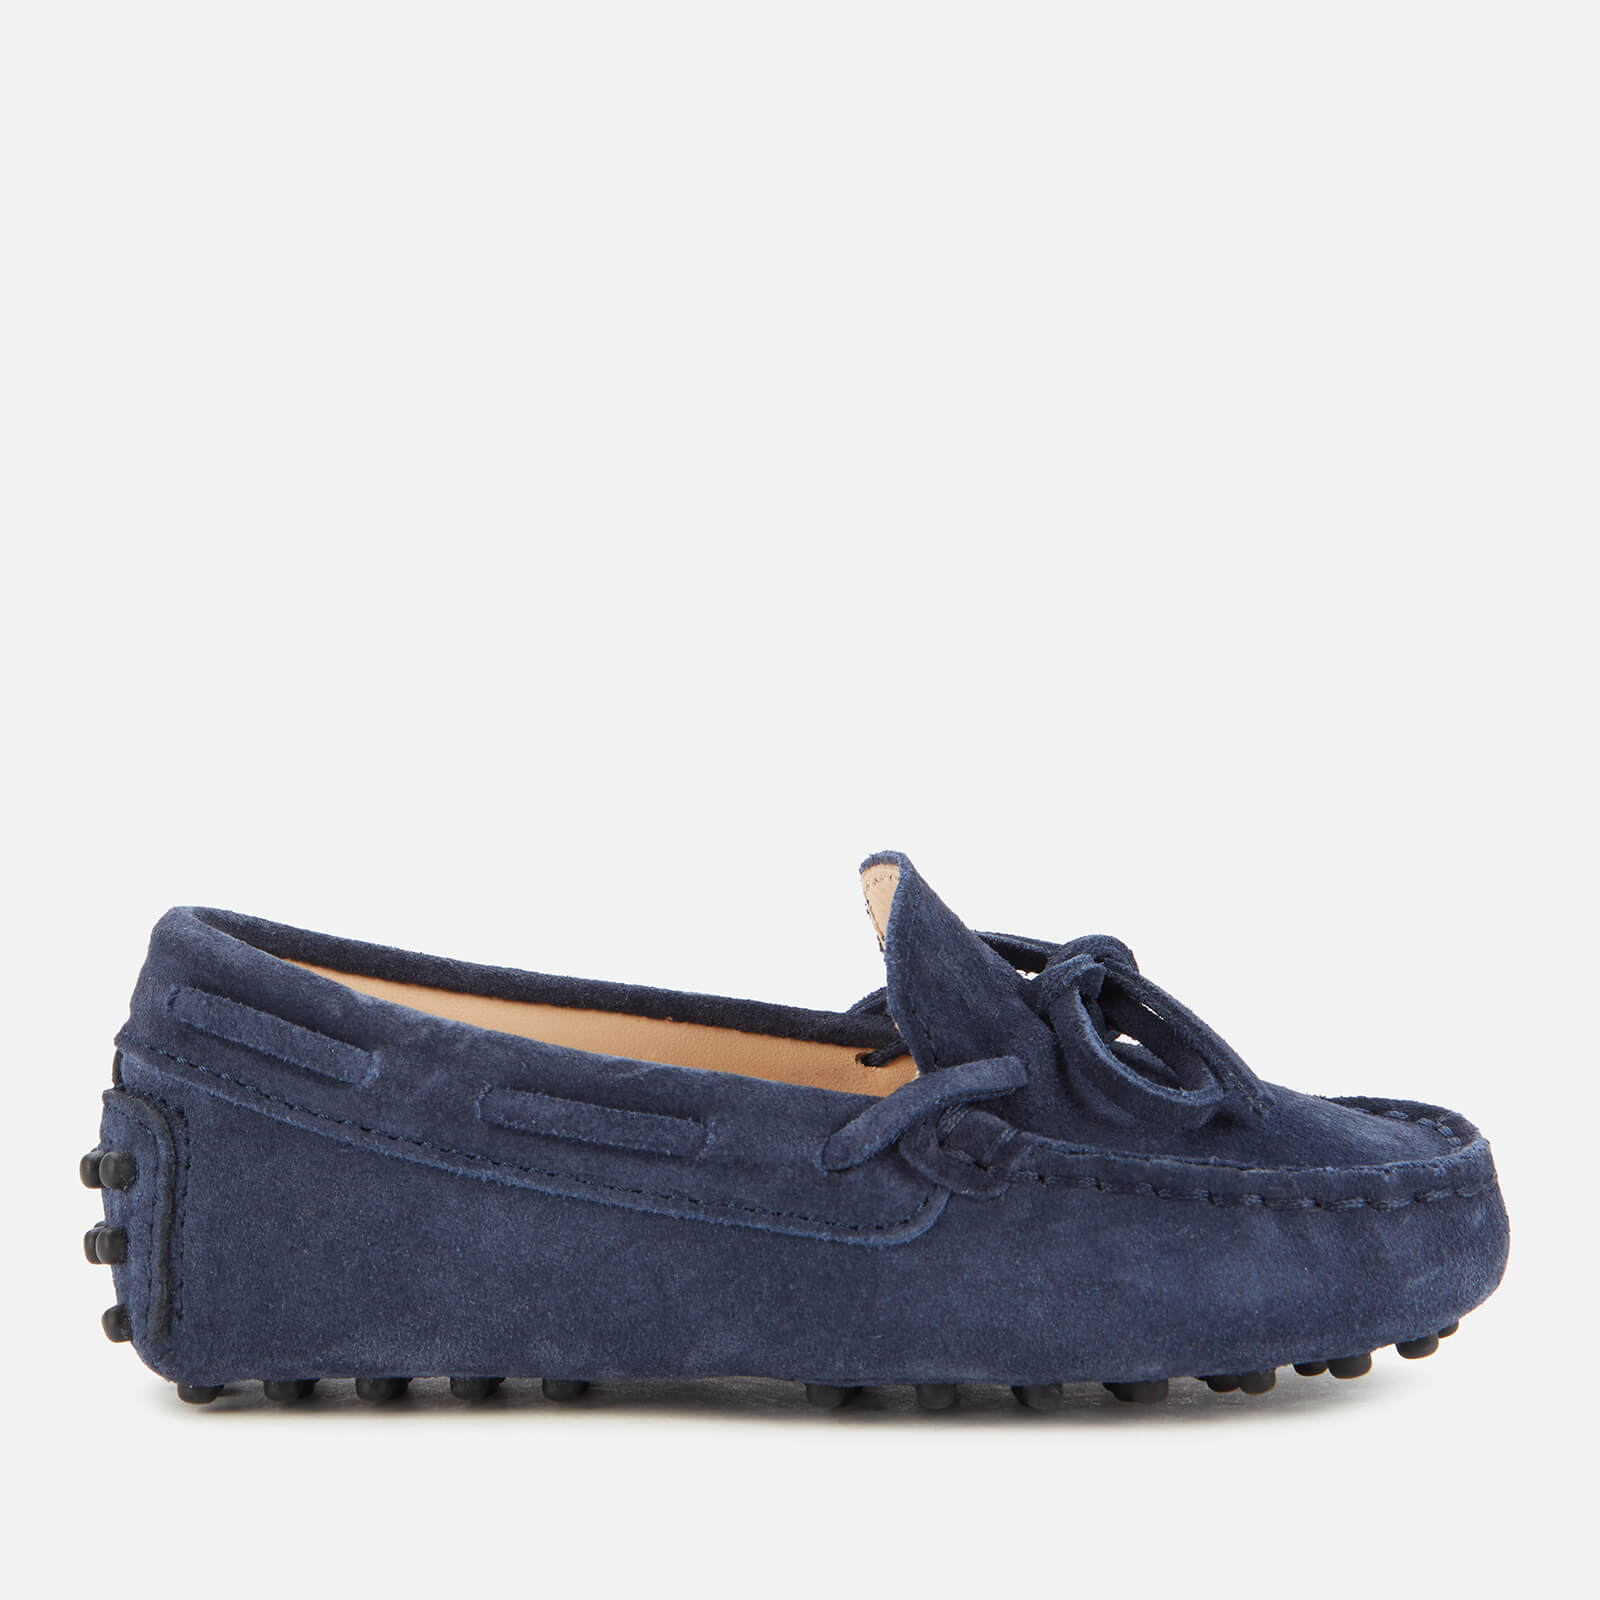 Tod's Toddlers' Suede Loafers - Navy - UK 5 Toddler